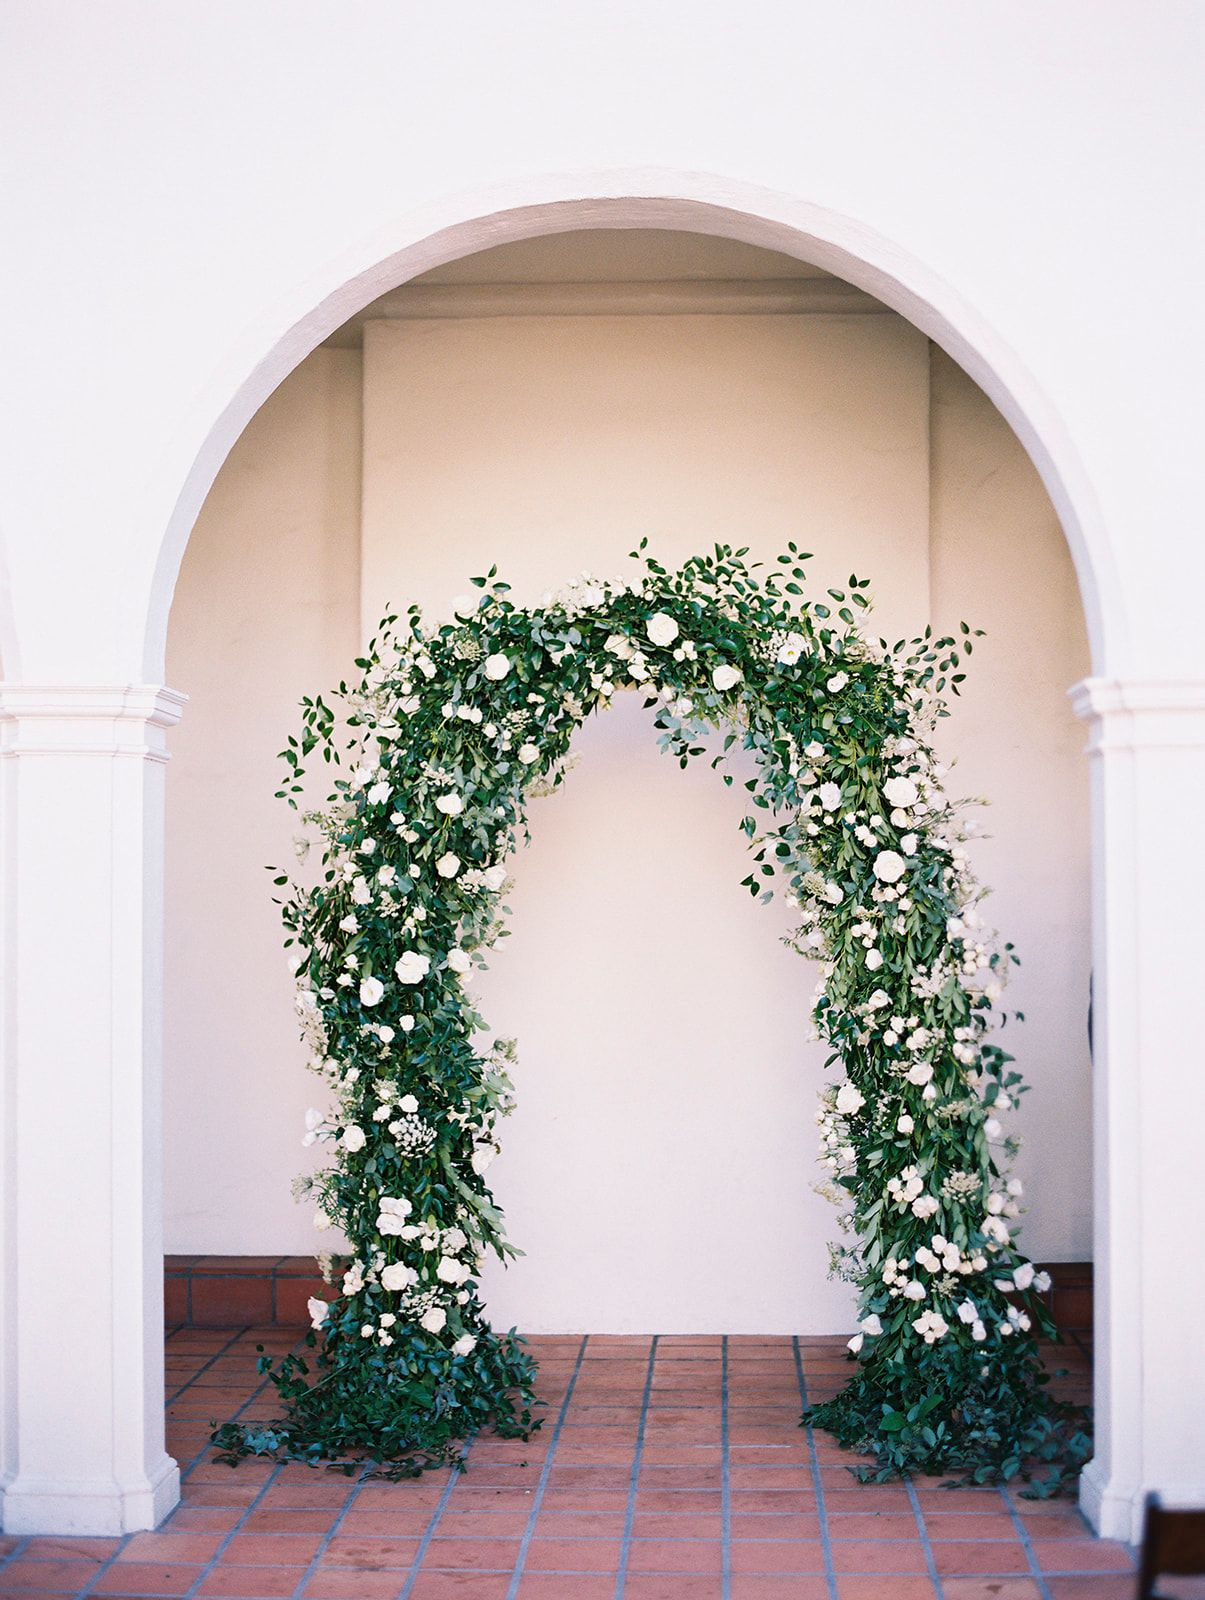 White flowers and smilax covered rounded wedding ceremony